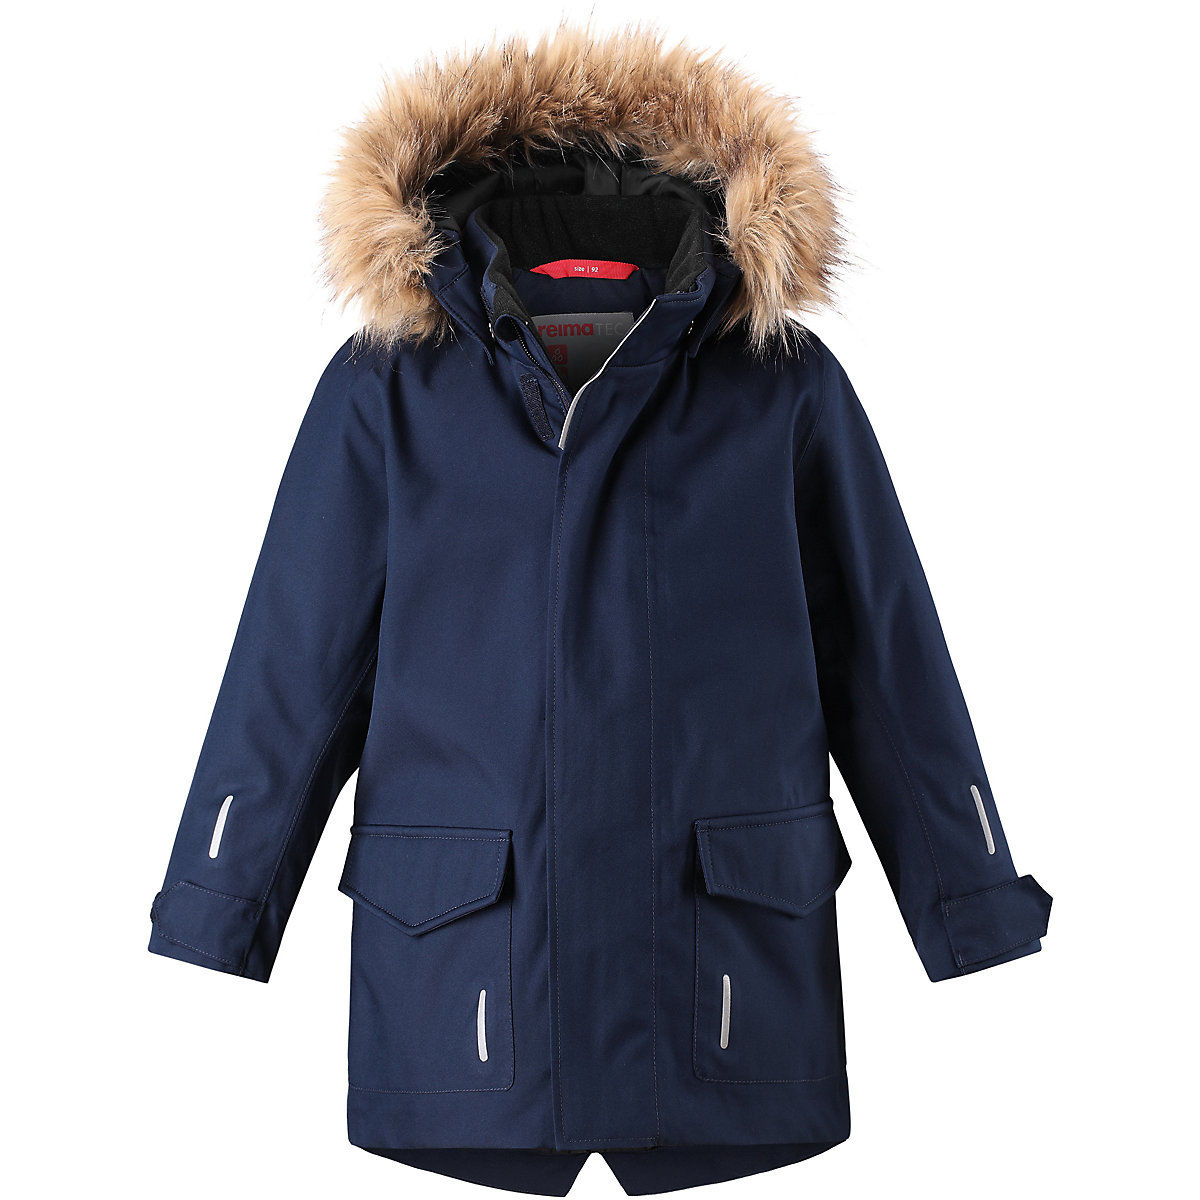 REIMA Jackets 8665239 For boys Polyester  winter fur baby clothing boy Jacket